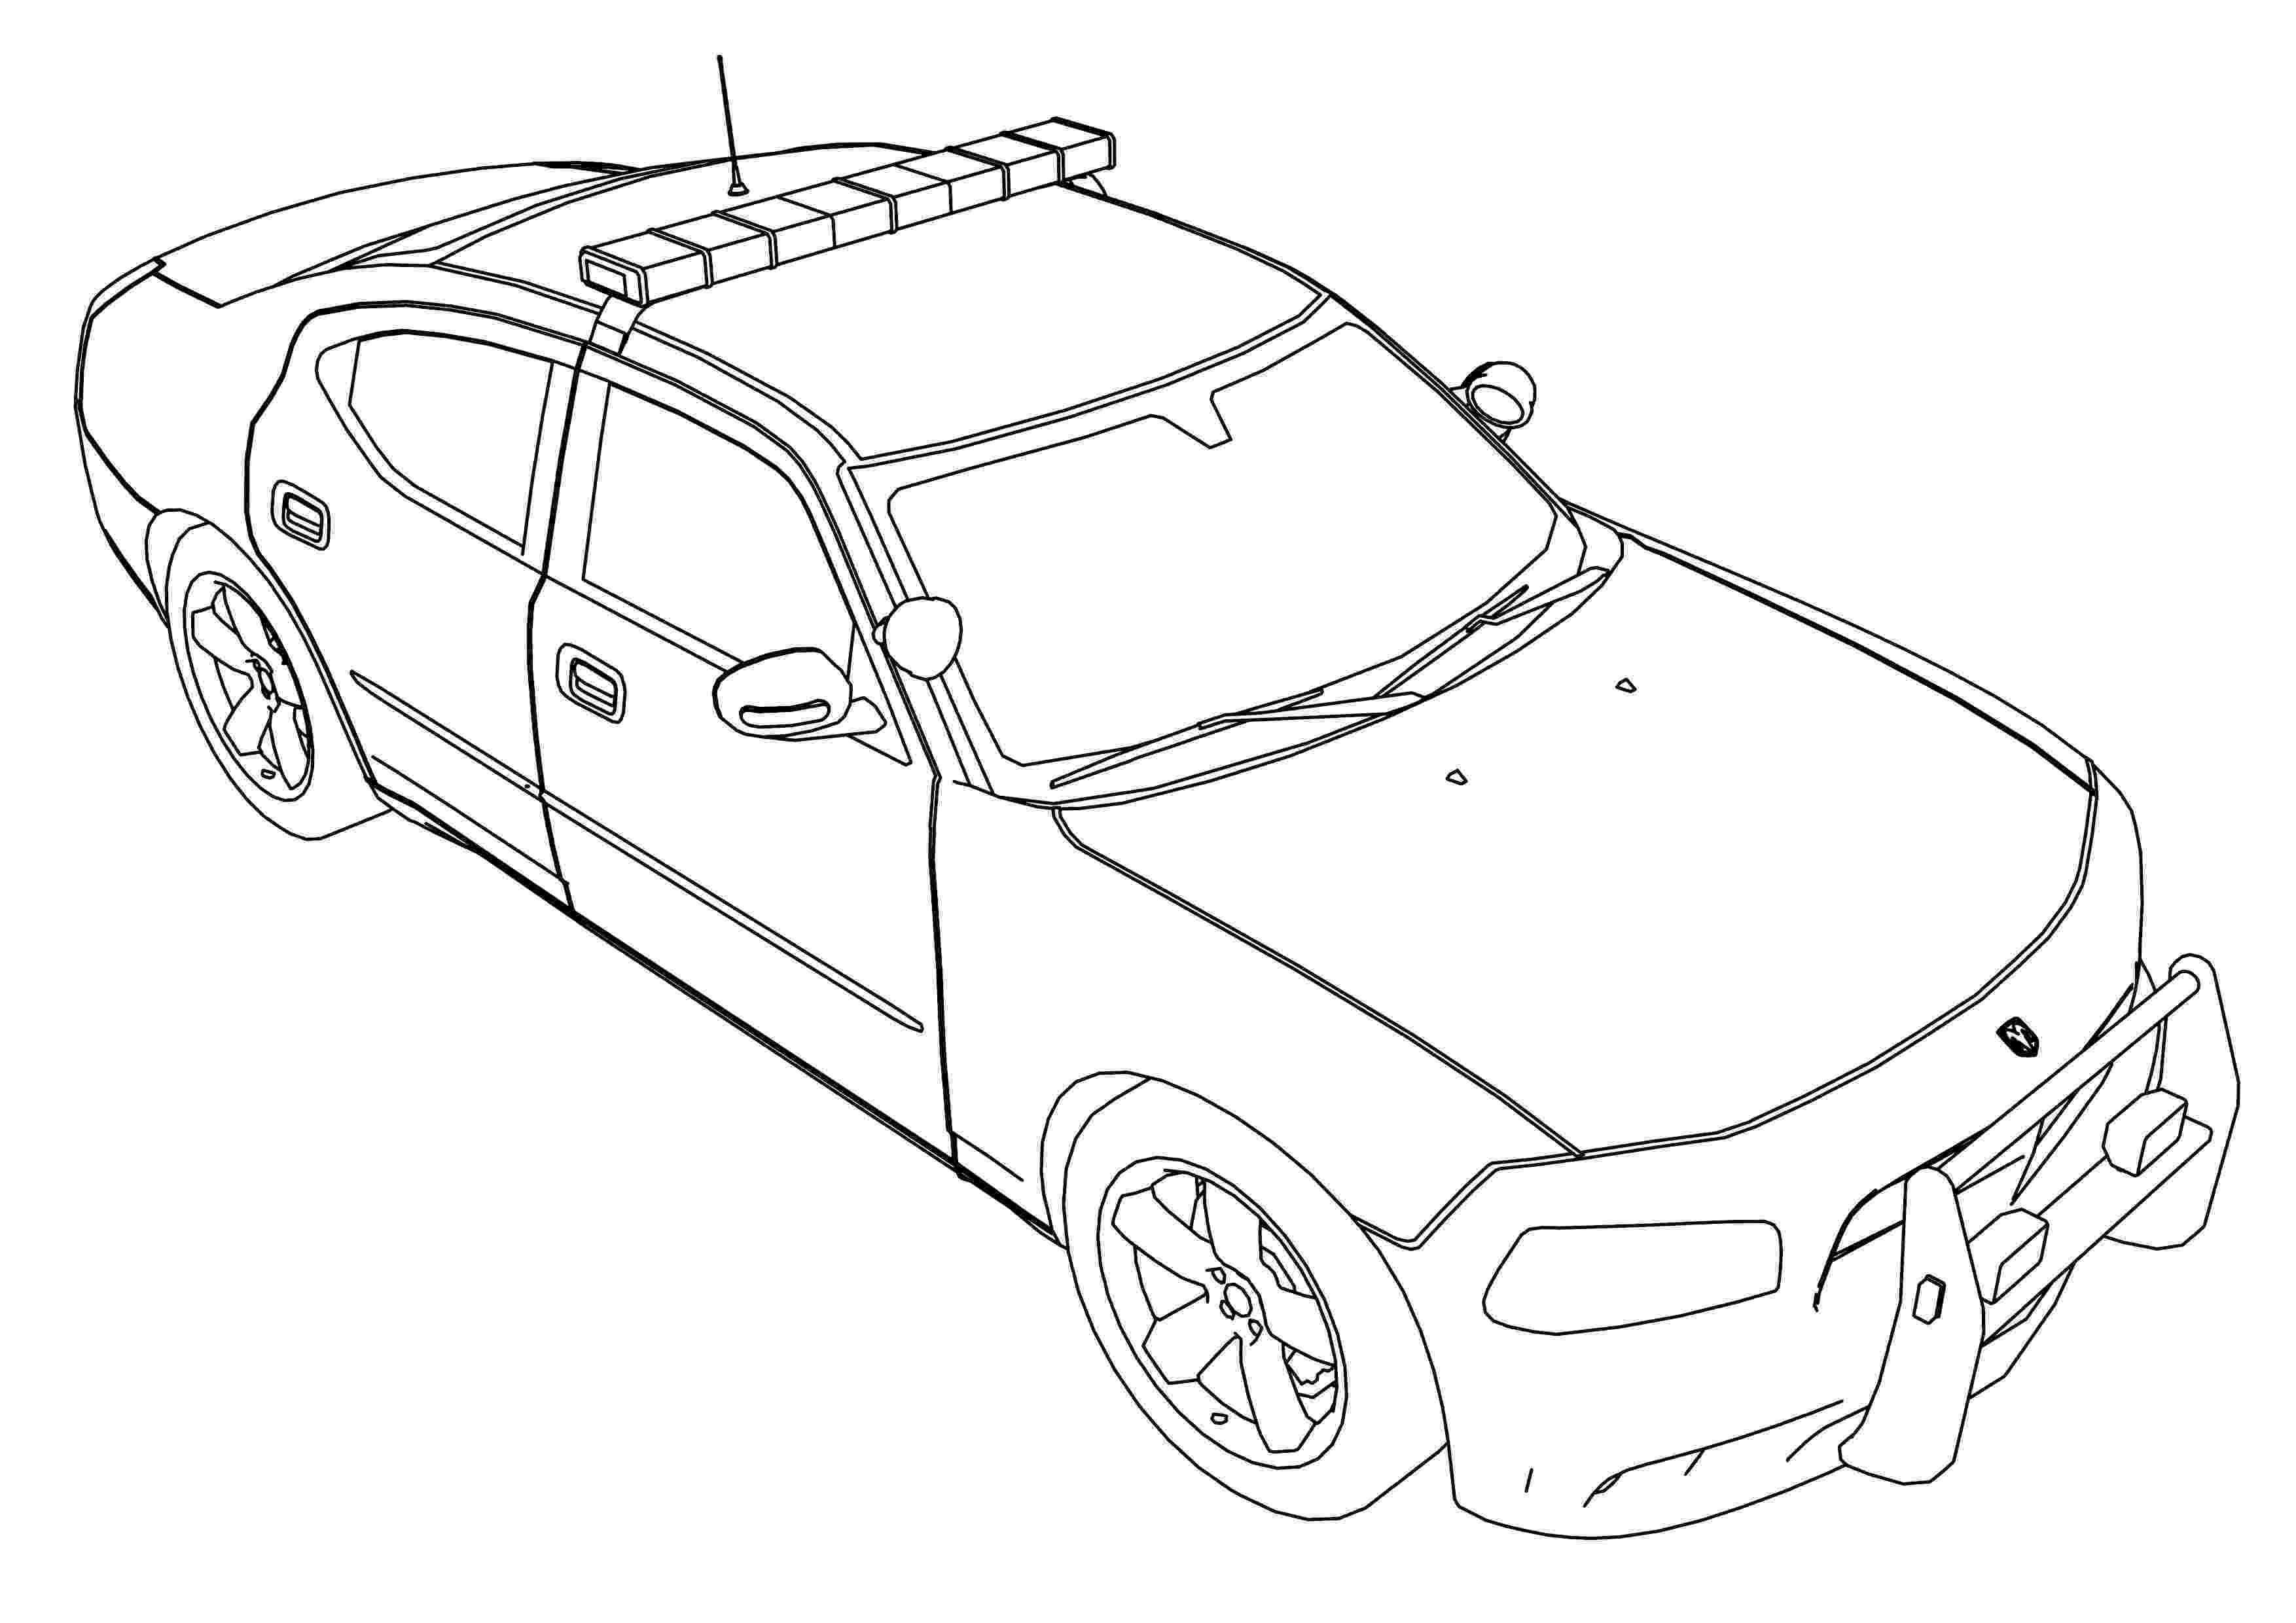 car colouring page car coloring pages best coloring pages for kids colouring car page